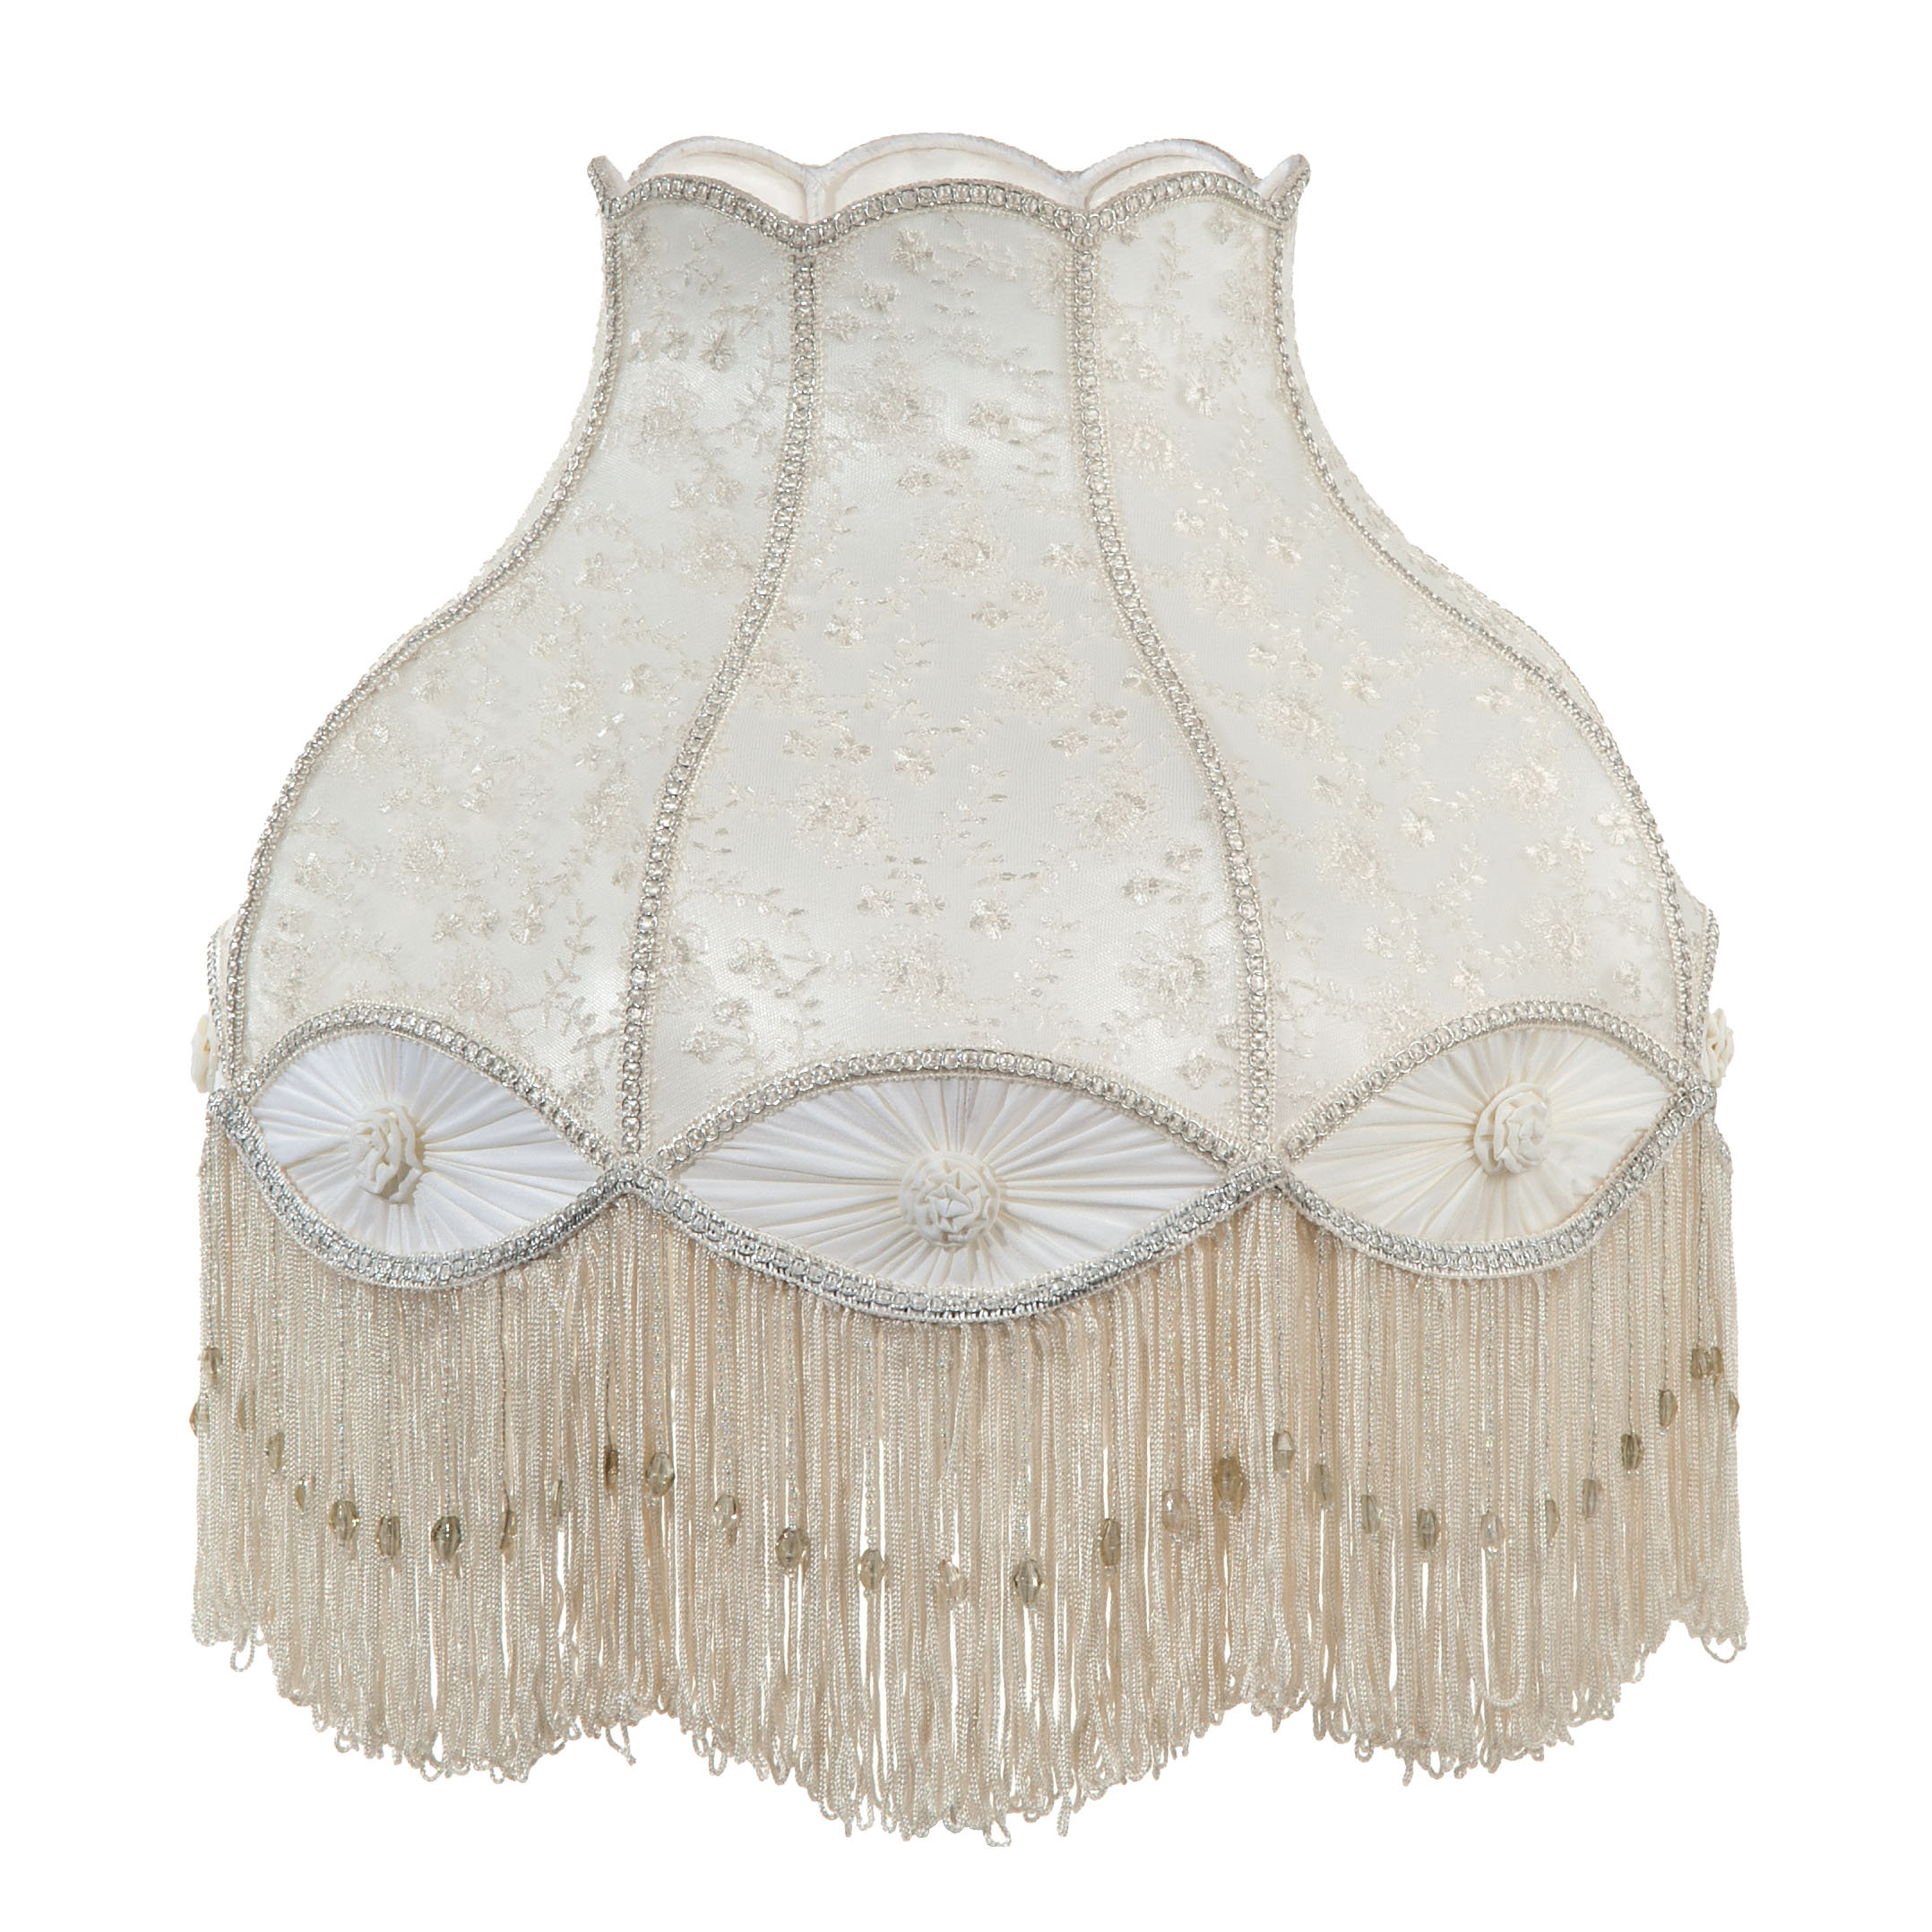 Victorian style ivory color bell shaped lace and pleated panel lamp 06975 victorian style ivory color bell shaped lace and pleated panel lamp shade greentooth Gallery